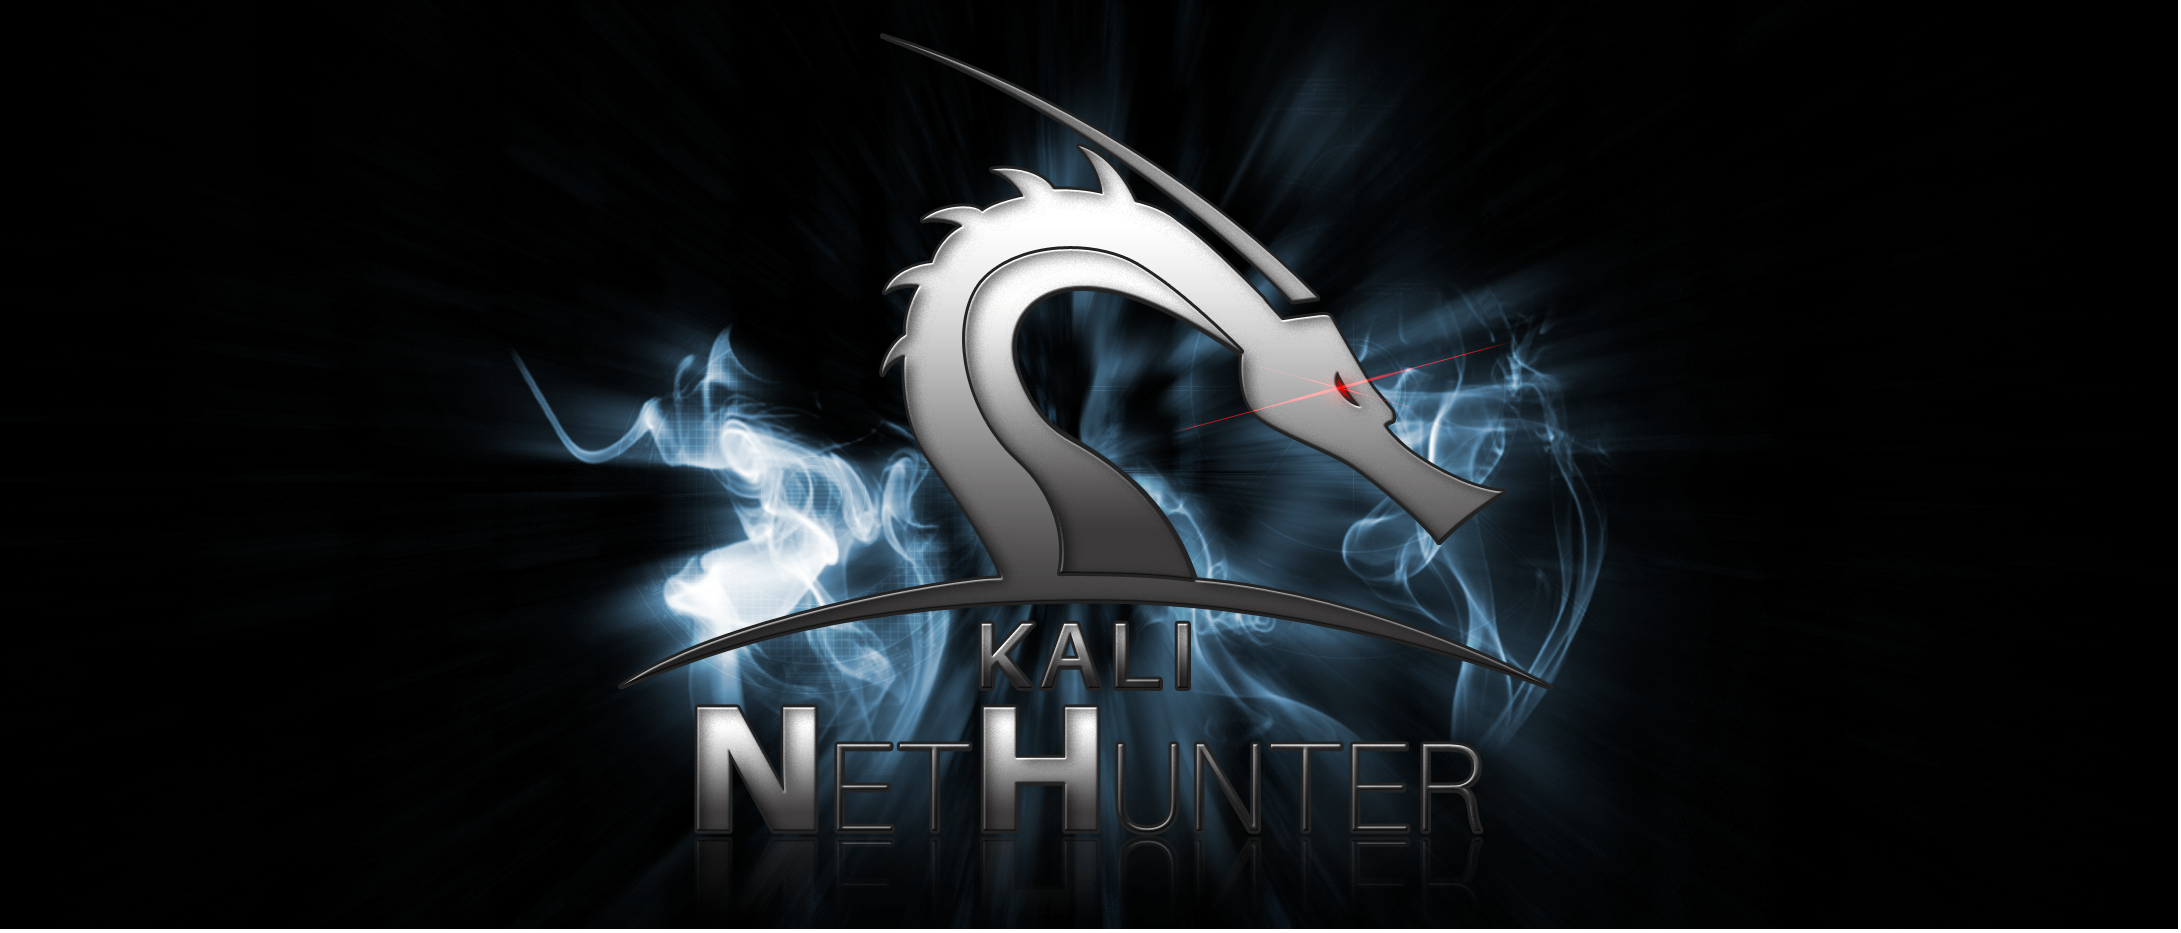 Rom Kali Linux Nethunter Oneplus One Edition Nethunter wallpapers 2181x933